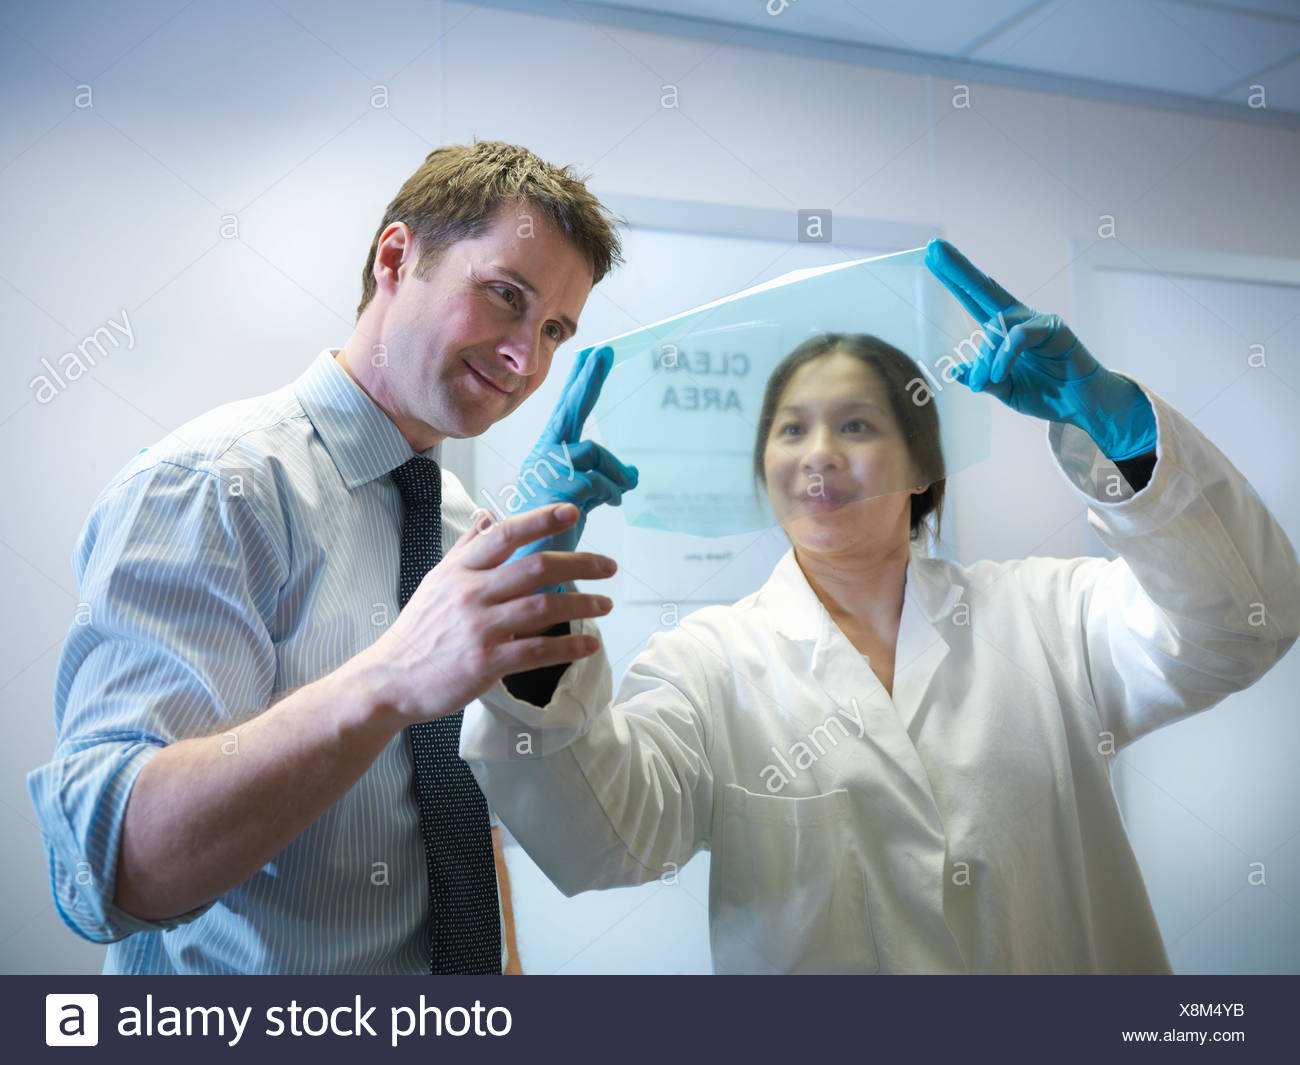 Scientists with finished product - Stock Image